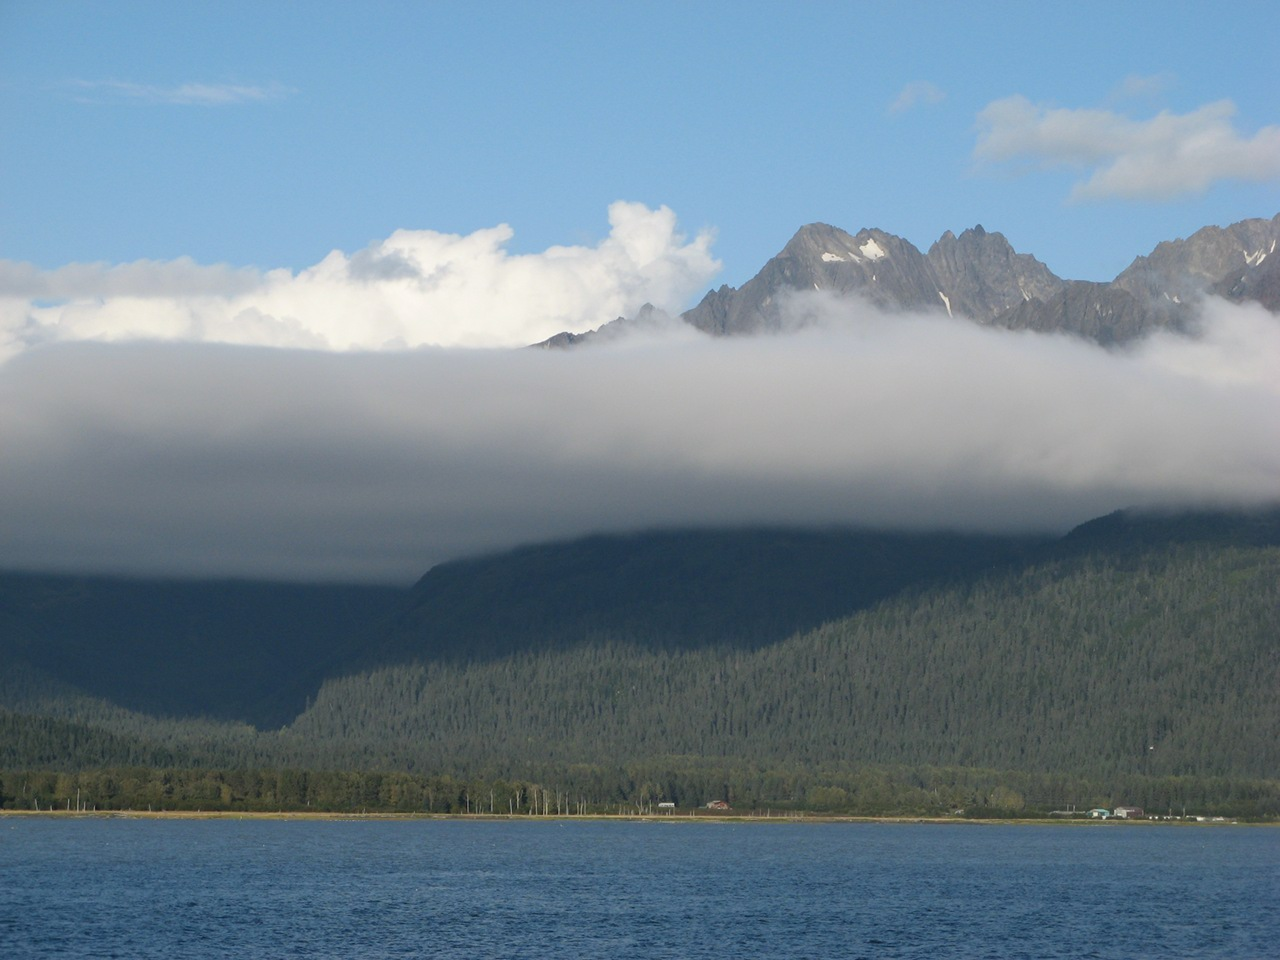 Seward, Alaska - Clouds hovering in mountain.